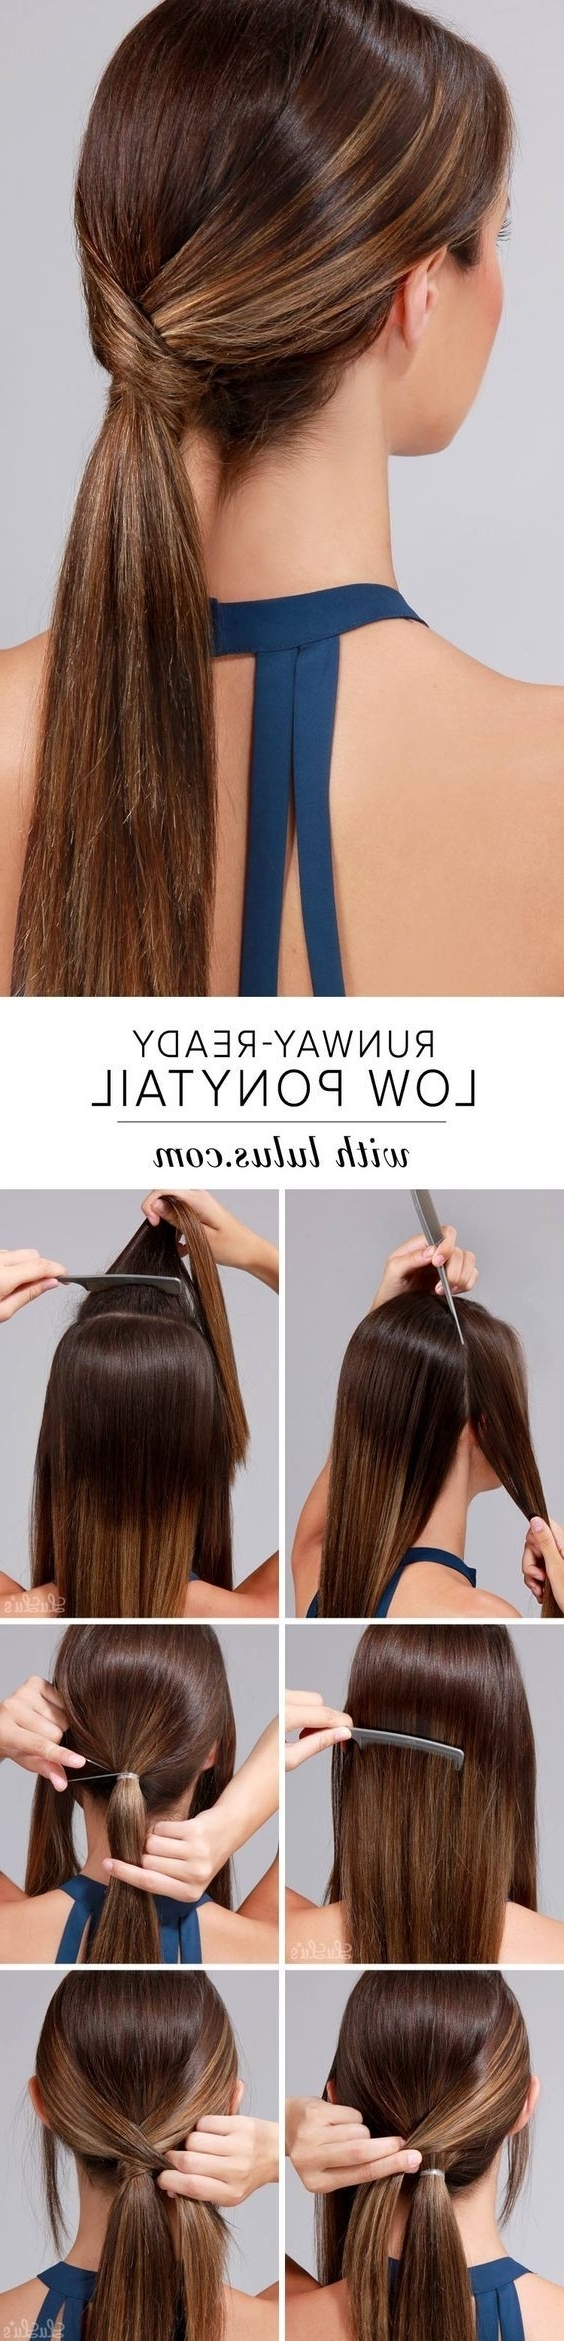 Favorite Low Hanging Ponytail Hairstyles Throughout 10 Easy Ponytail Hairstyles: Long Hair Style Ideas (View 16 of 20)